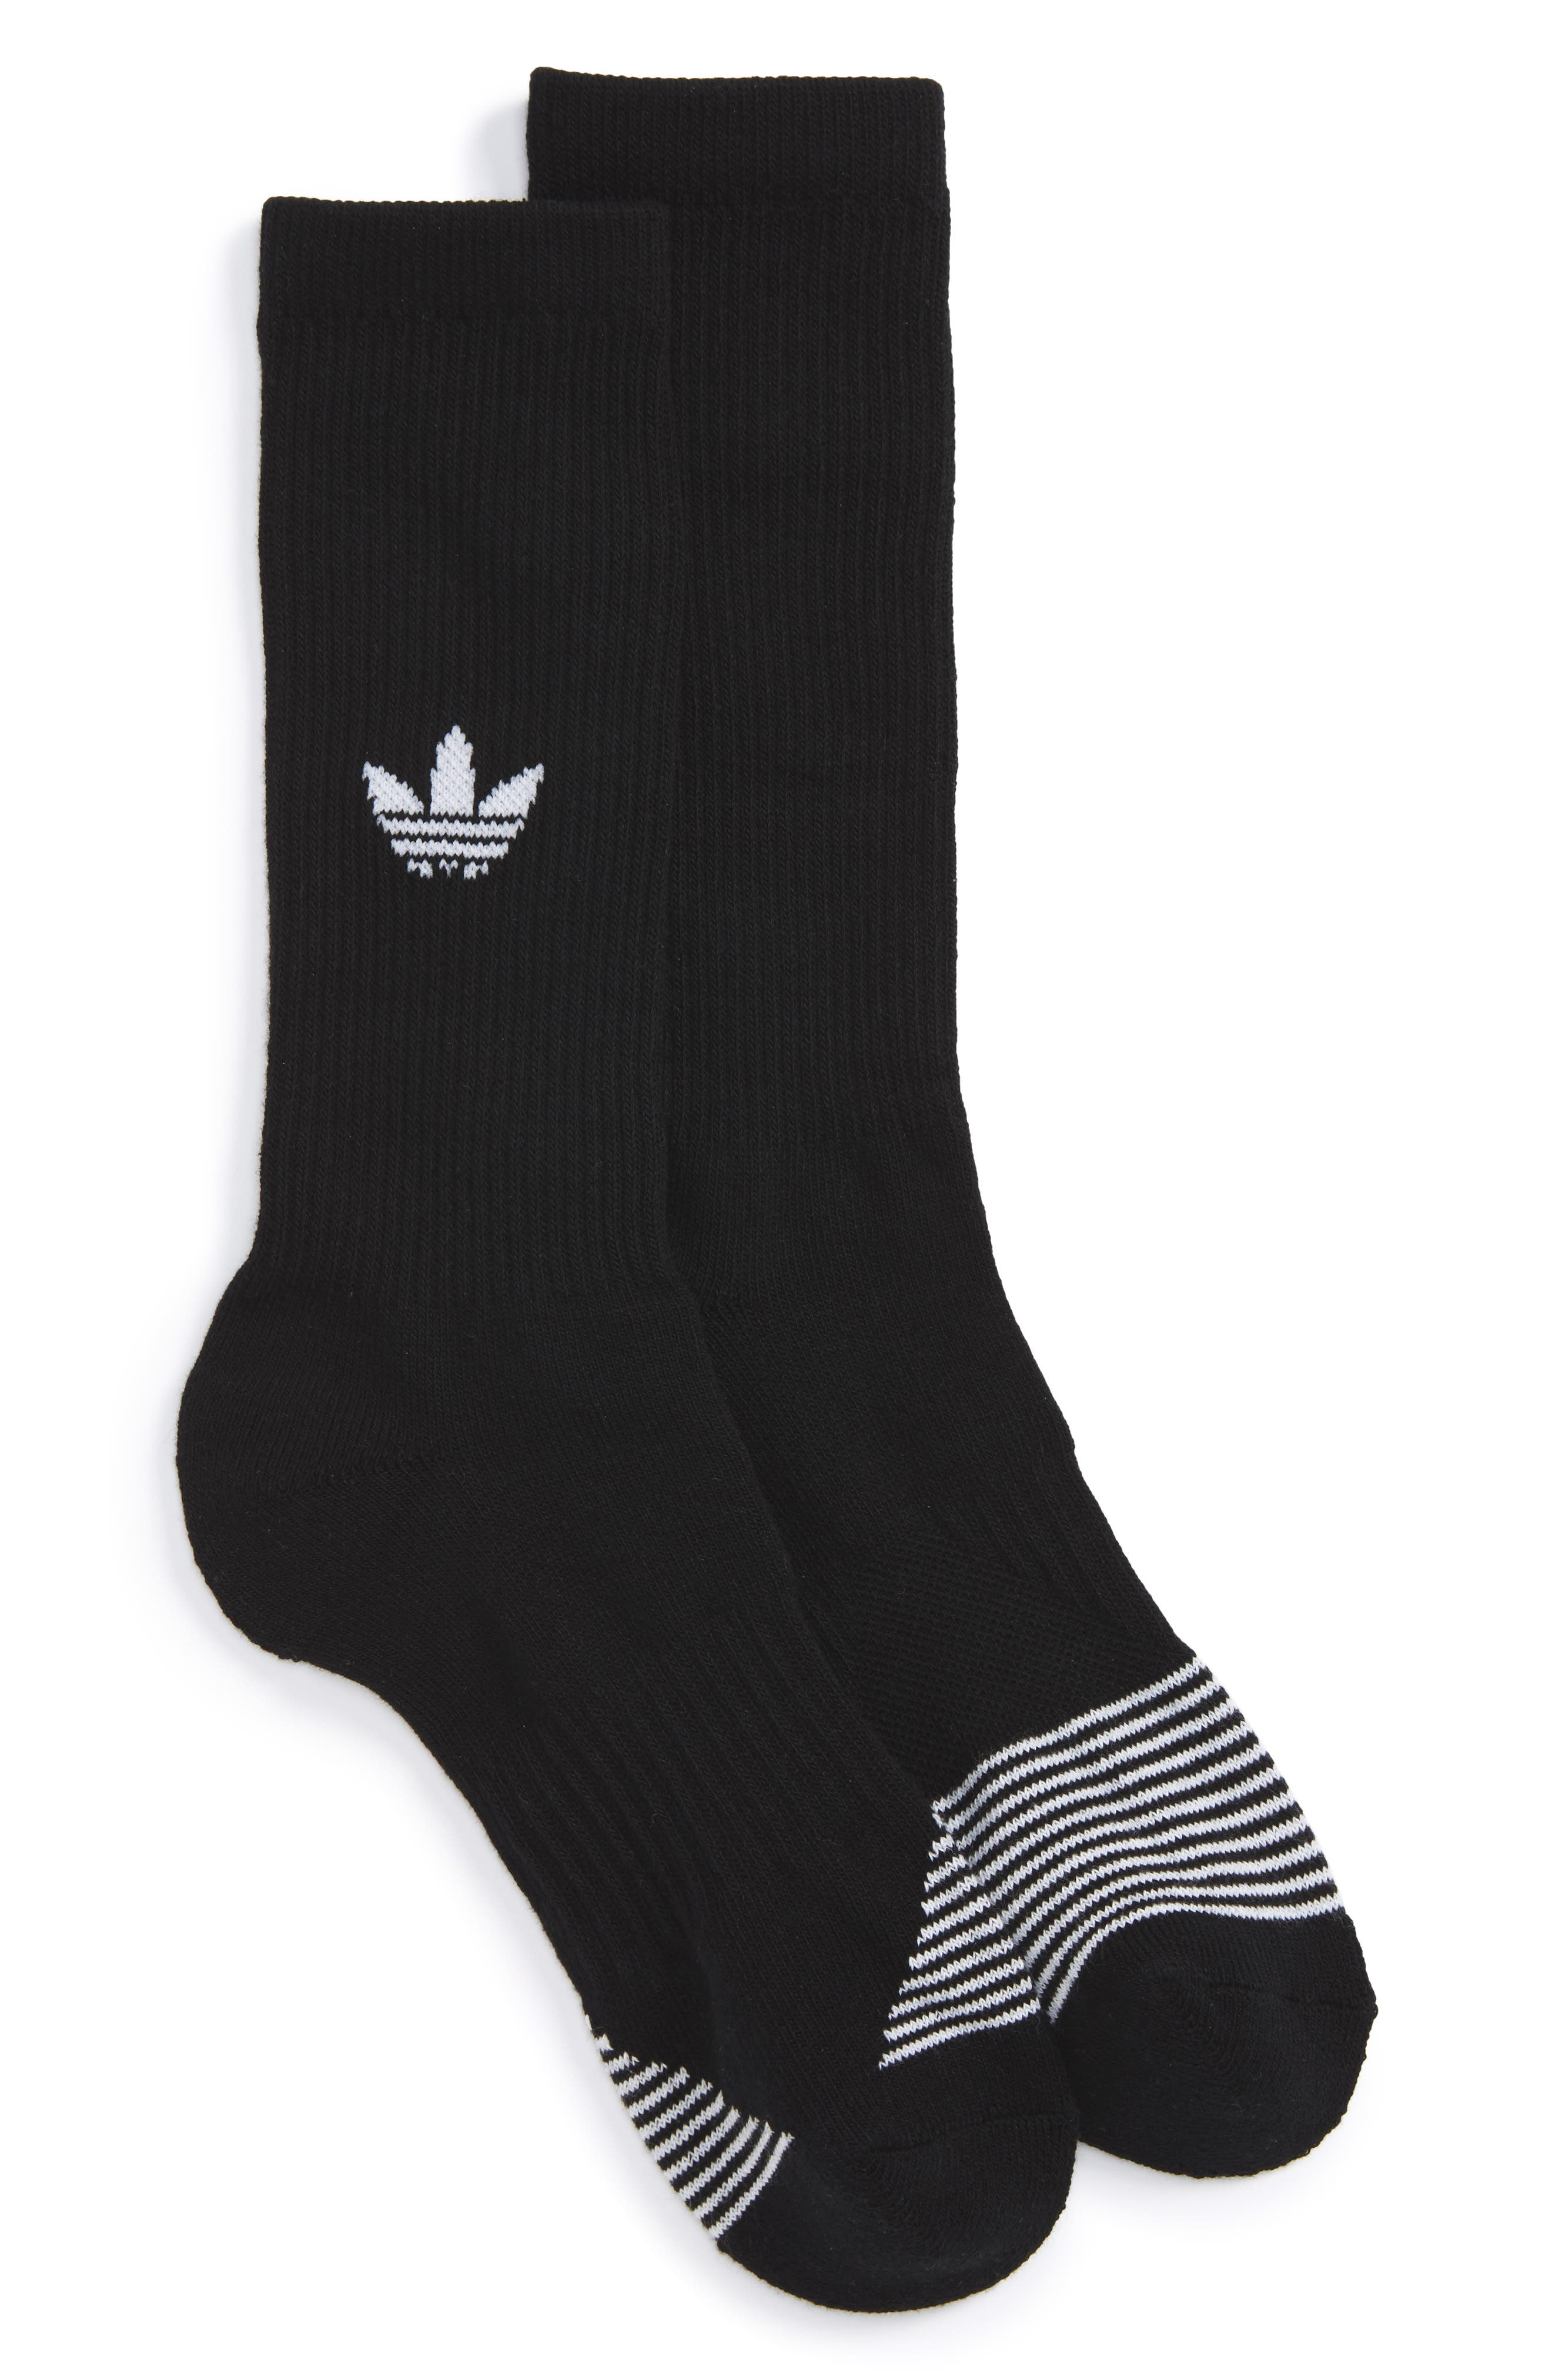 Alternate Image 1 Selected - adidas Originals Equipment Crew Socks